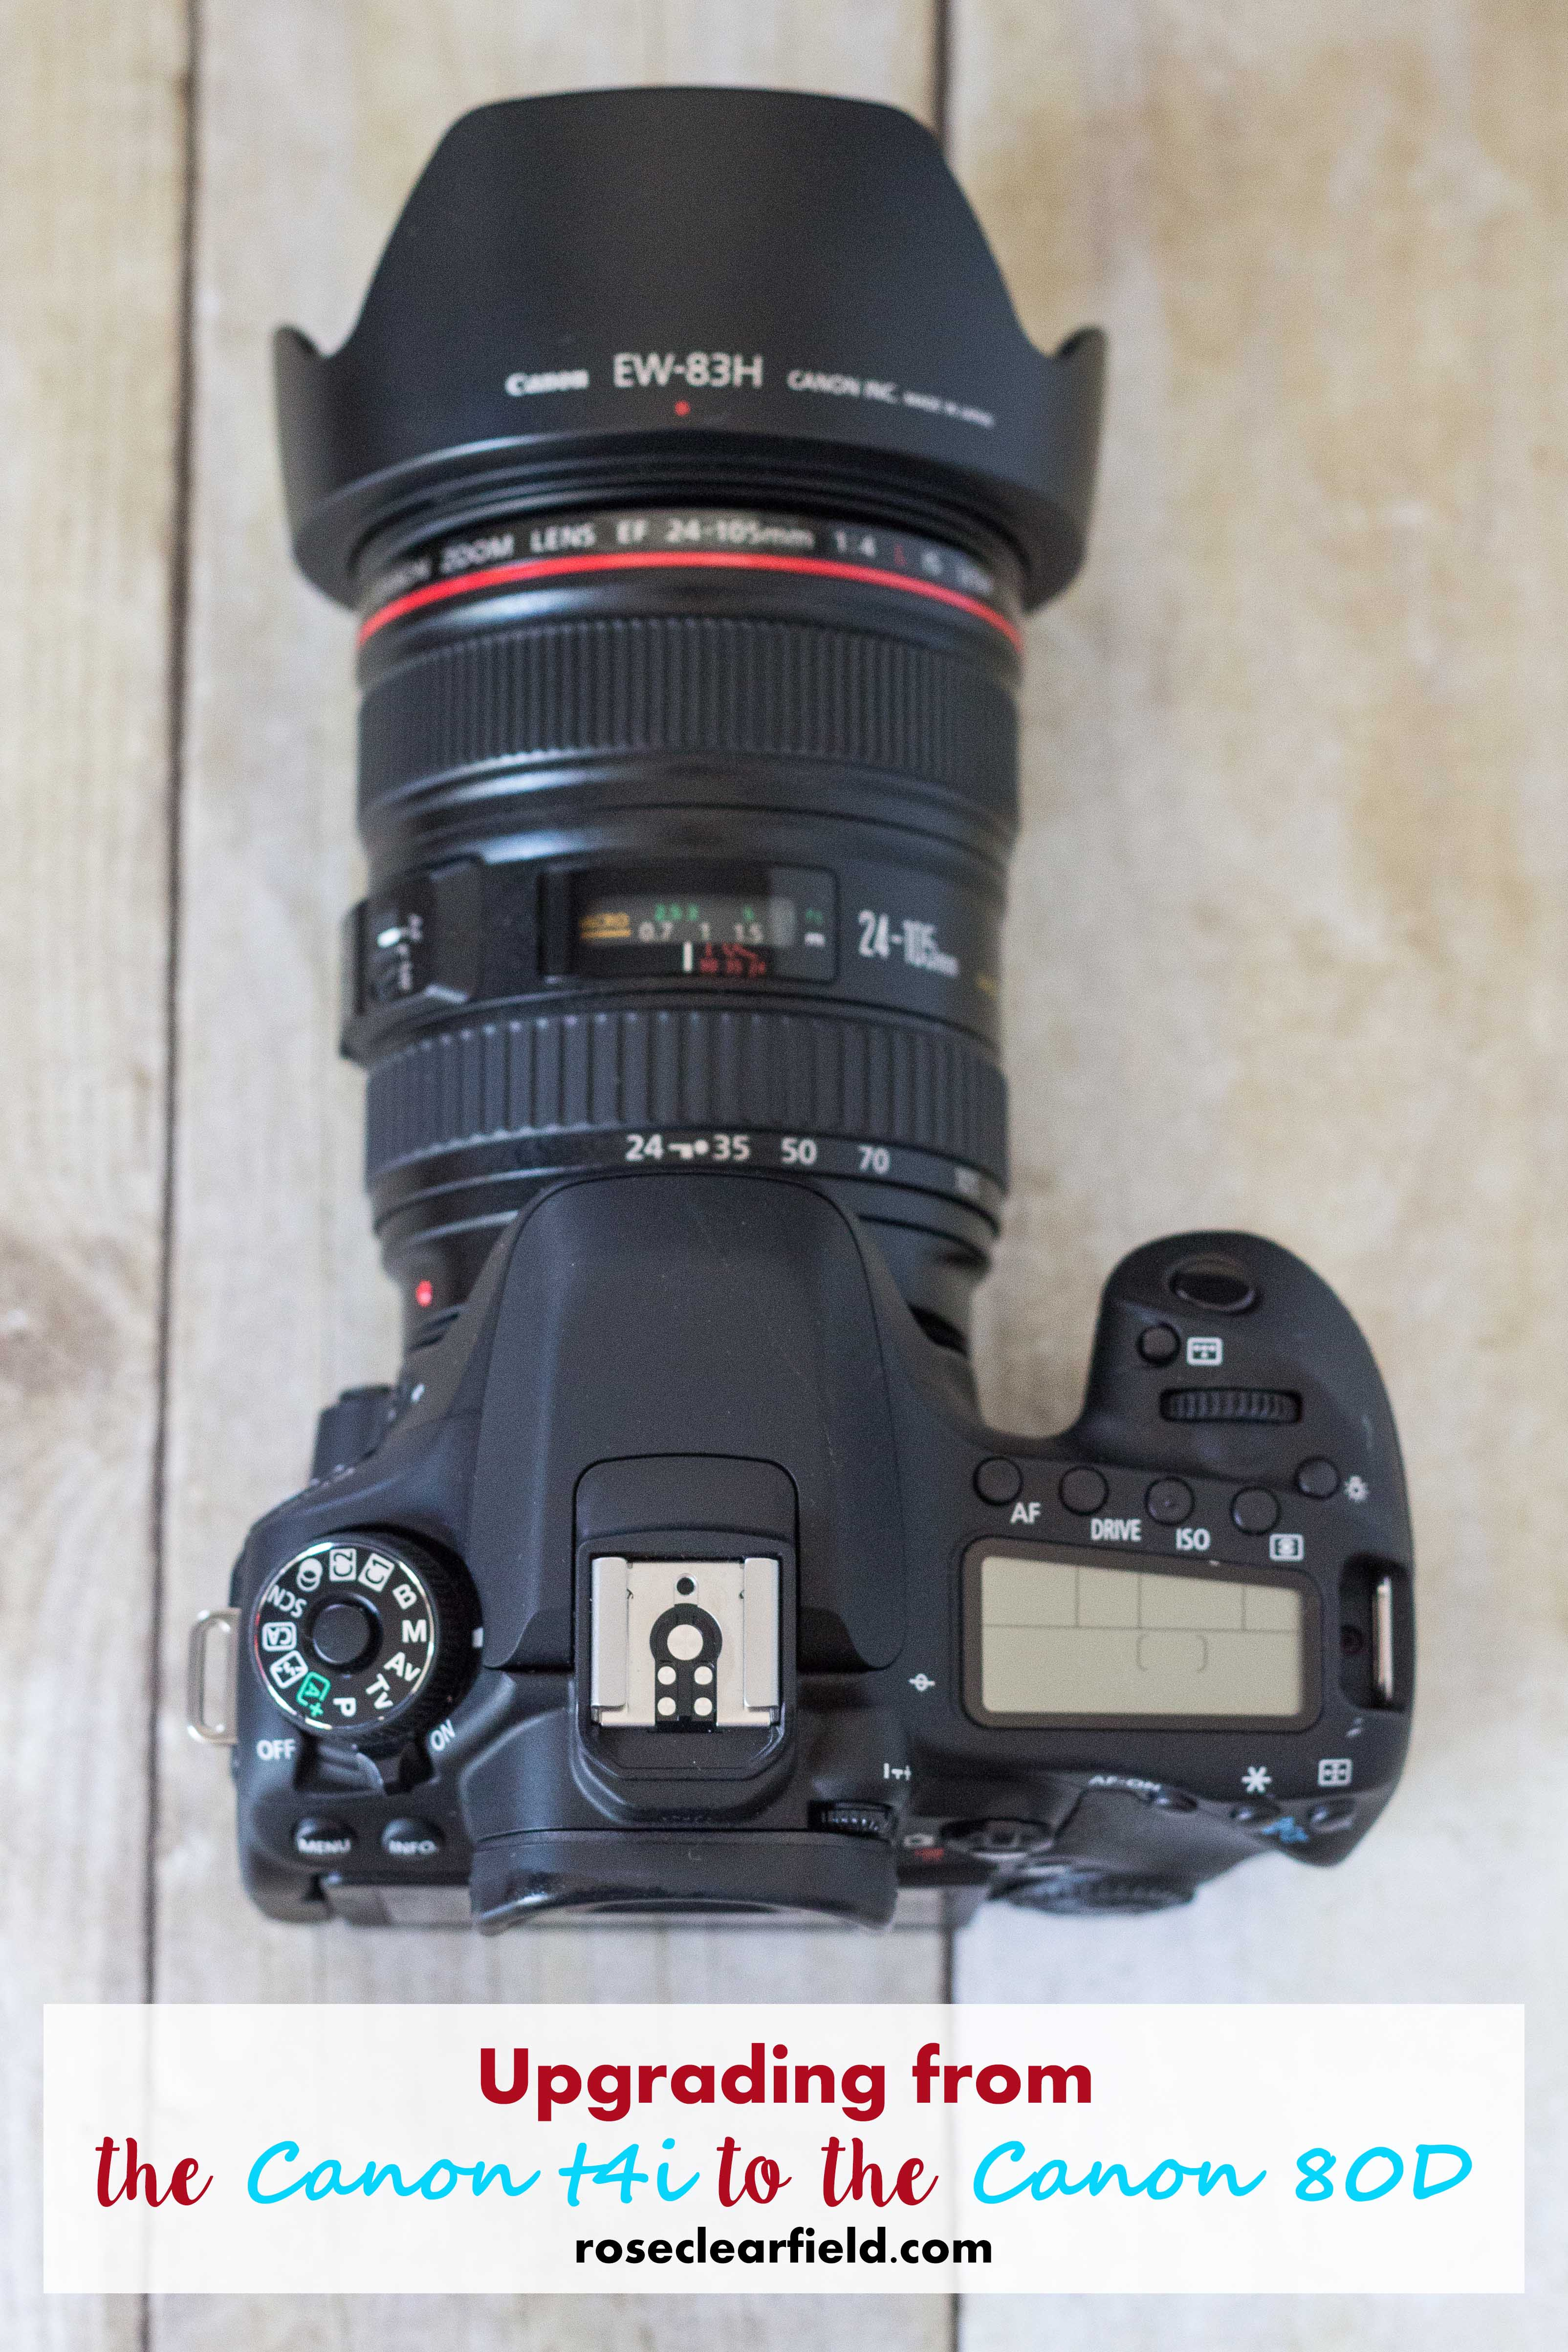 Upgrading from the Canon t4i to the Canon 80D | https://www.roseclearfield.com